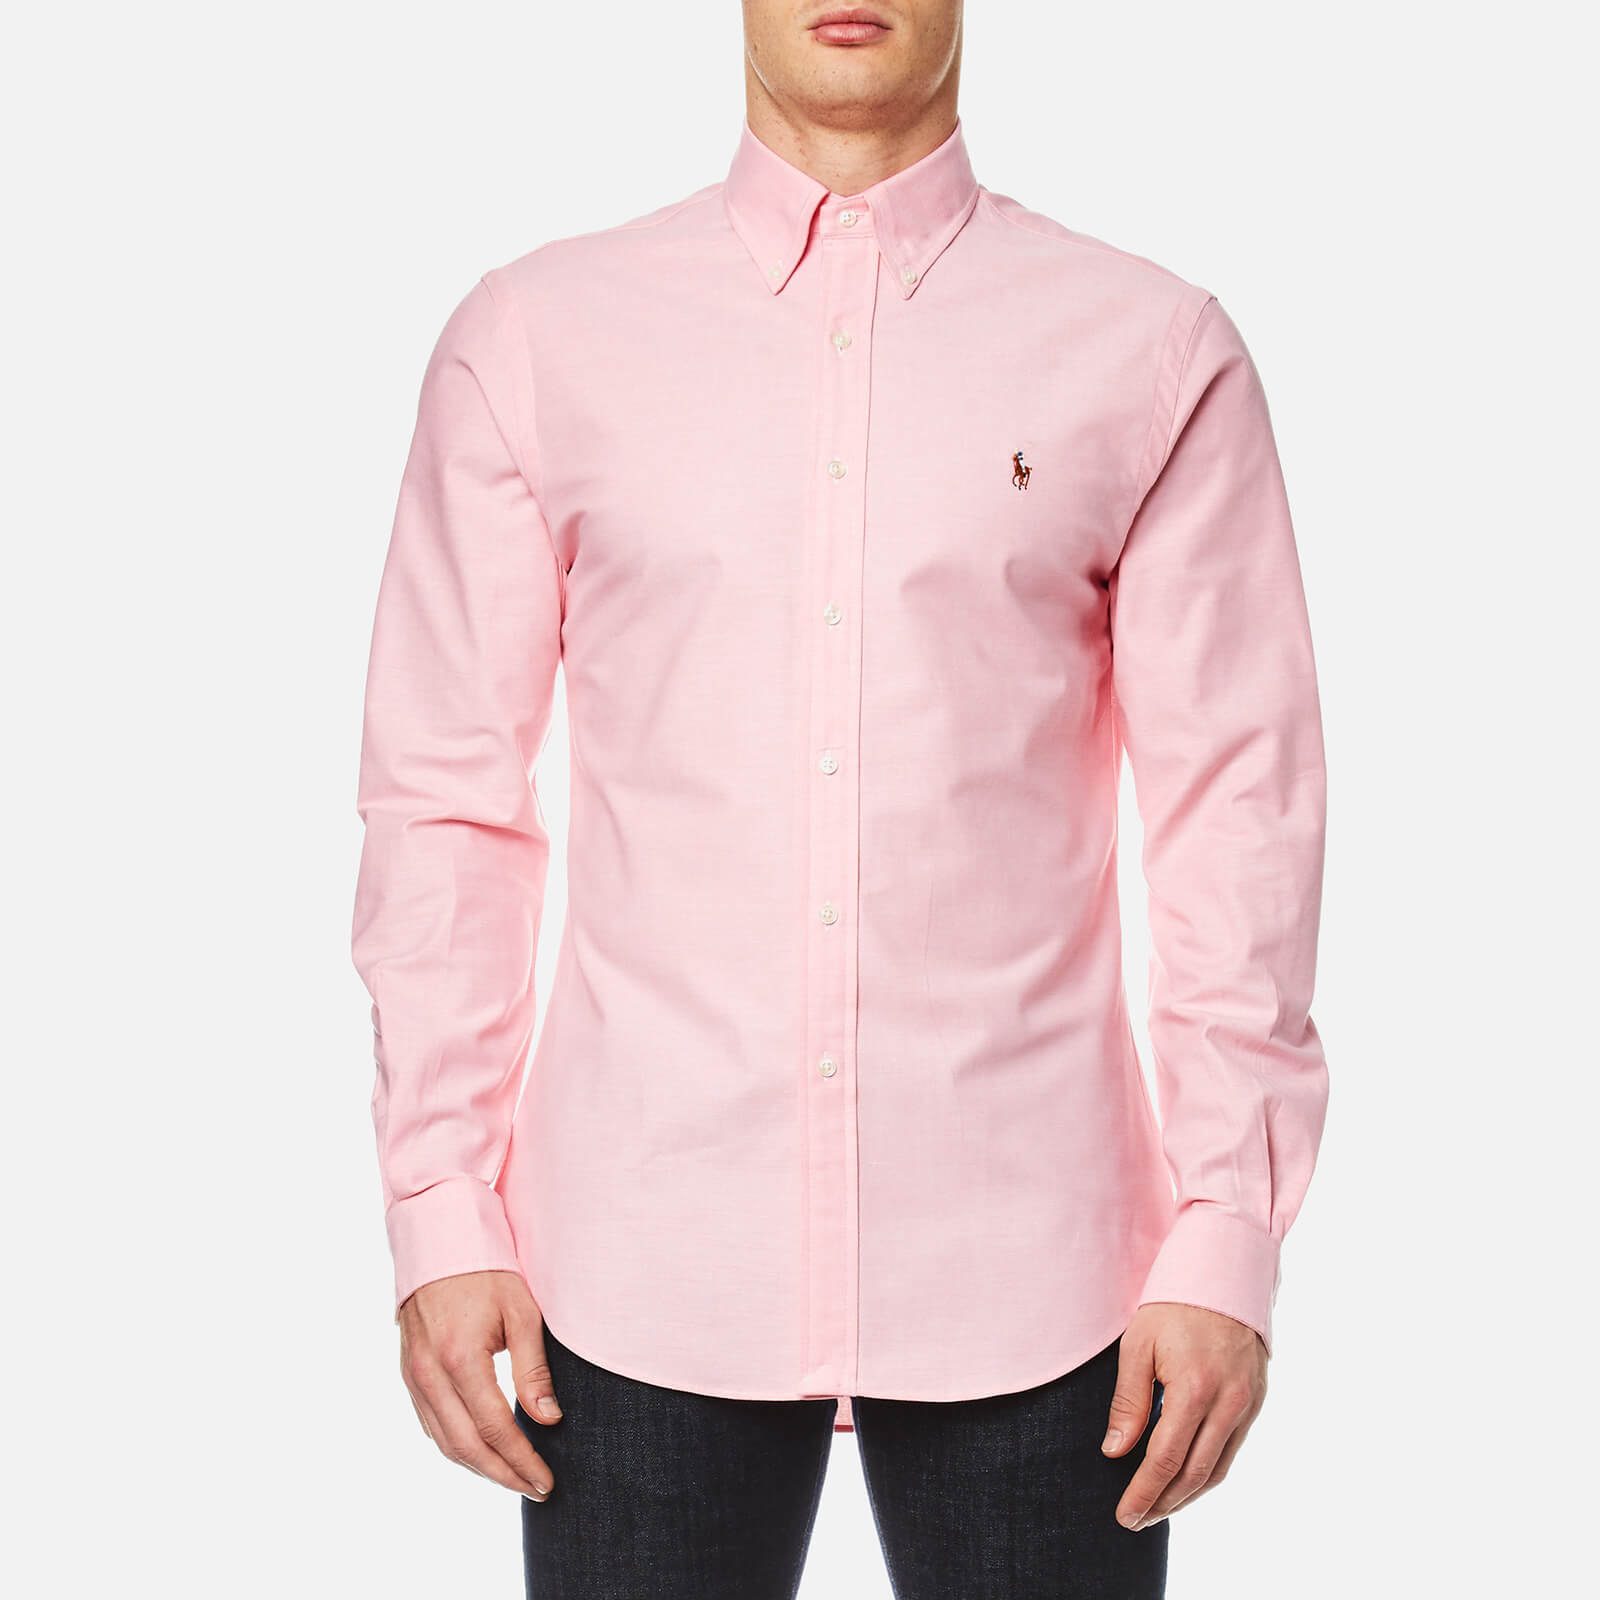 0d150b54 Polo Ralph Lauren Men's Slim Fit Button Down Stretch Oxford Shirt - Pink -  Free UK Delivery over £50